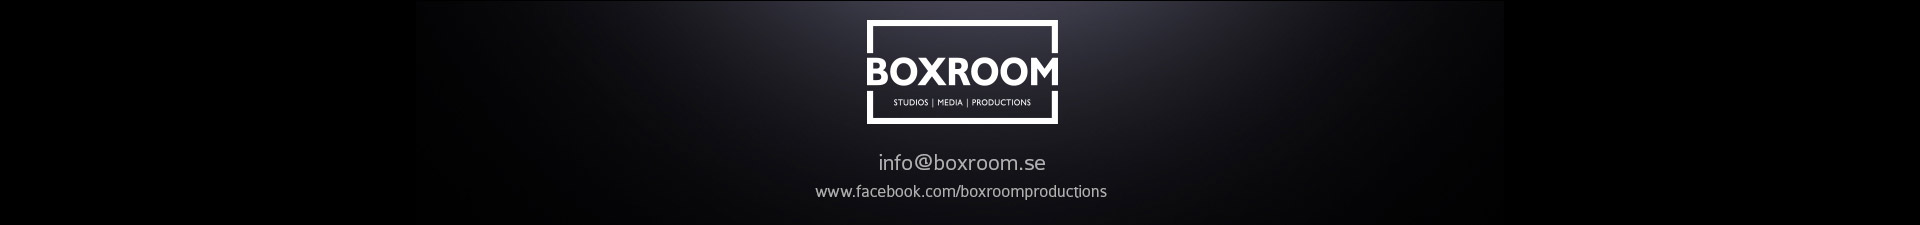 boxroom_newsite_footer2